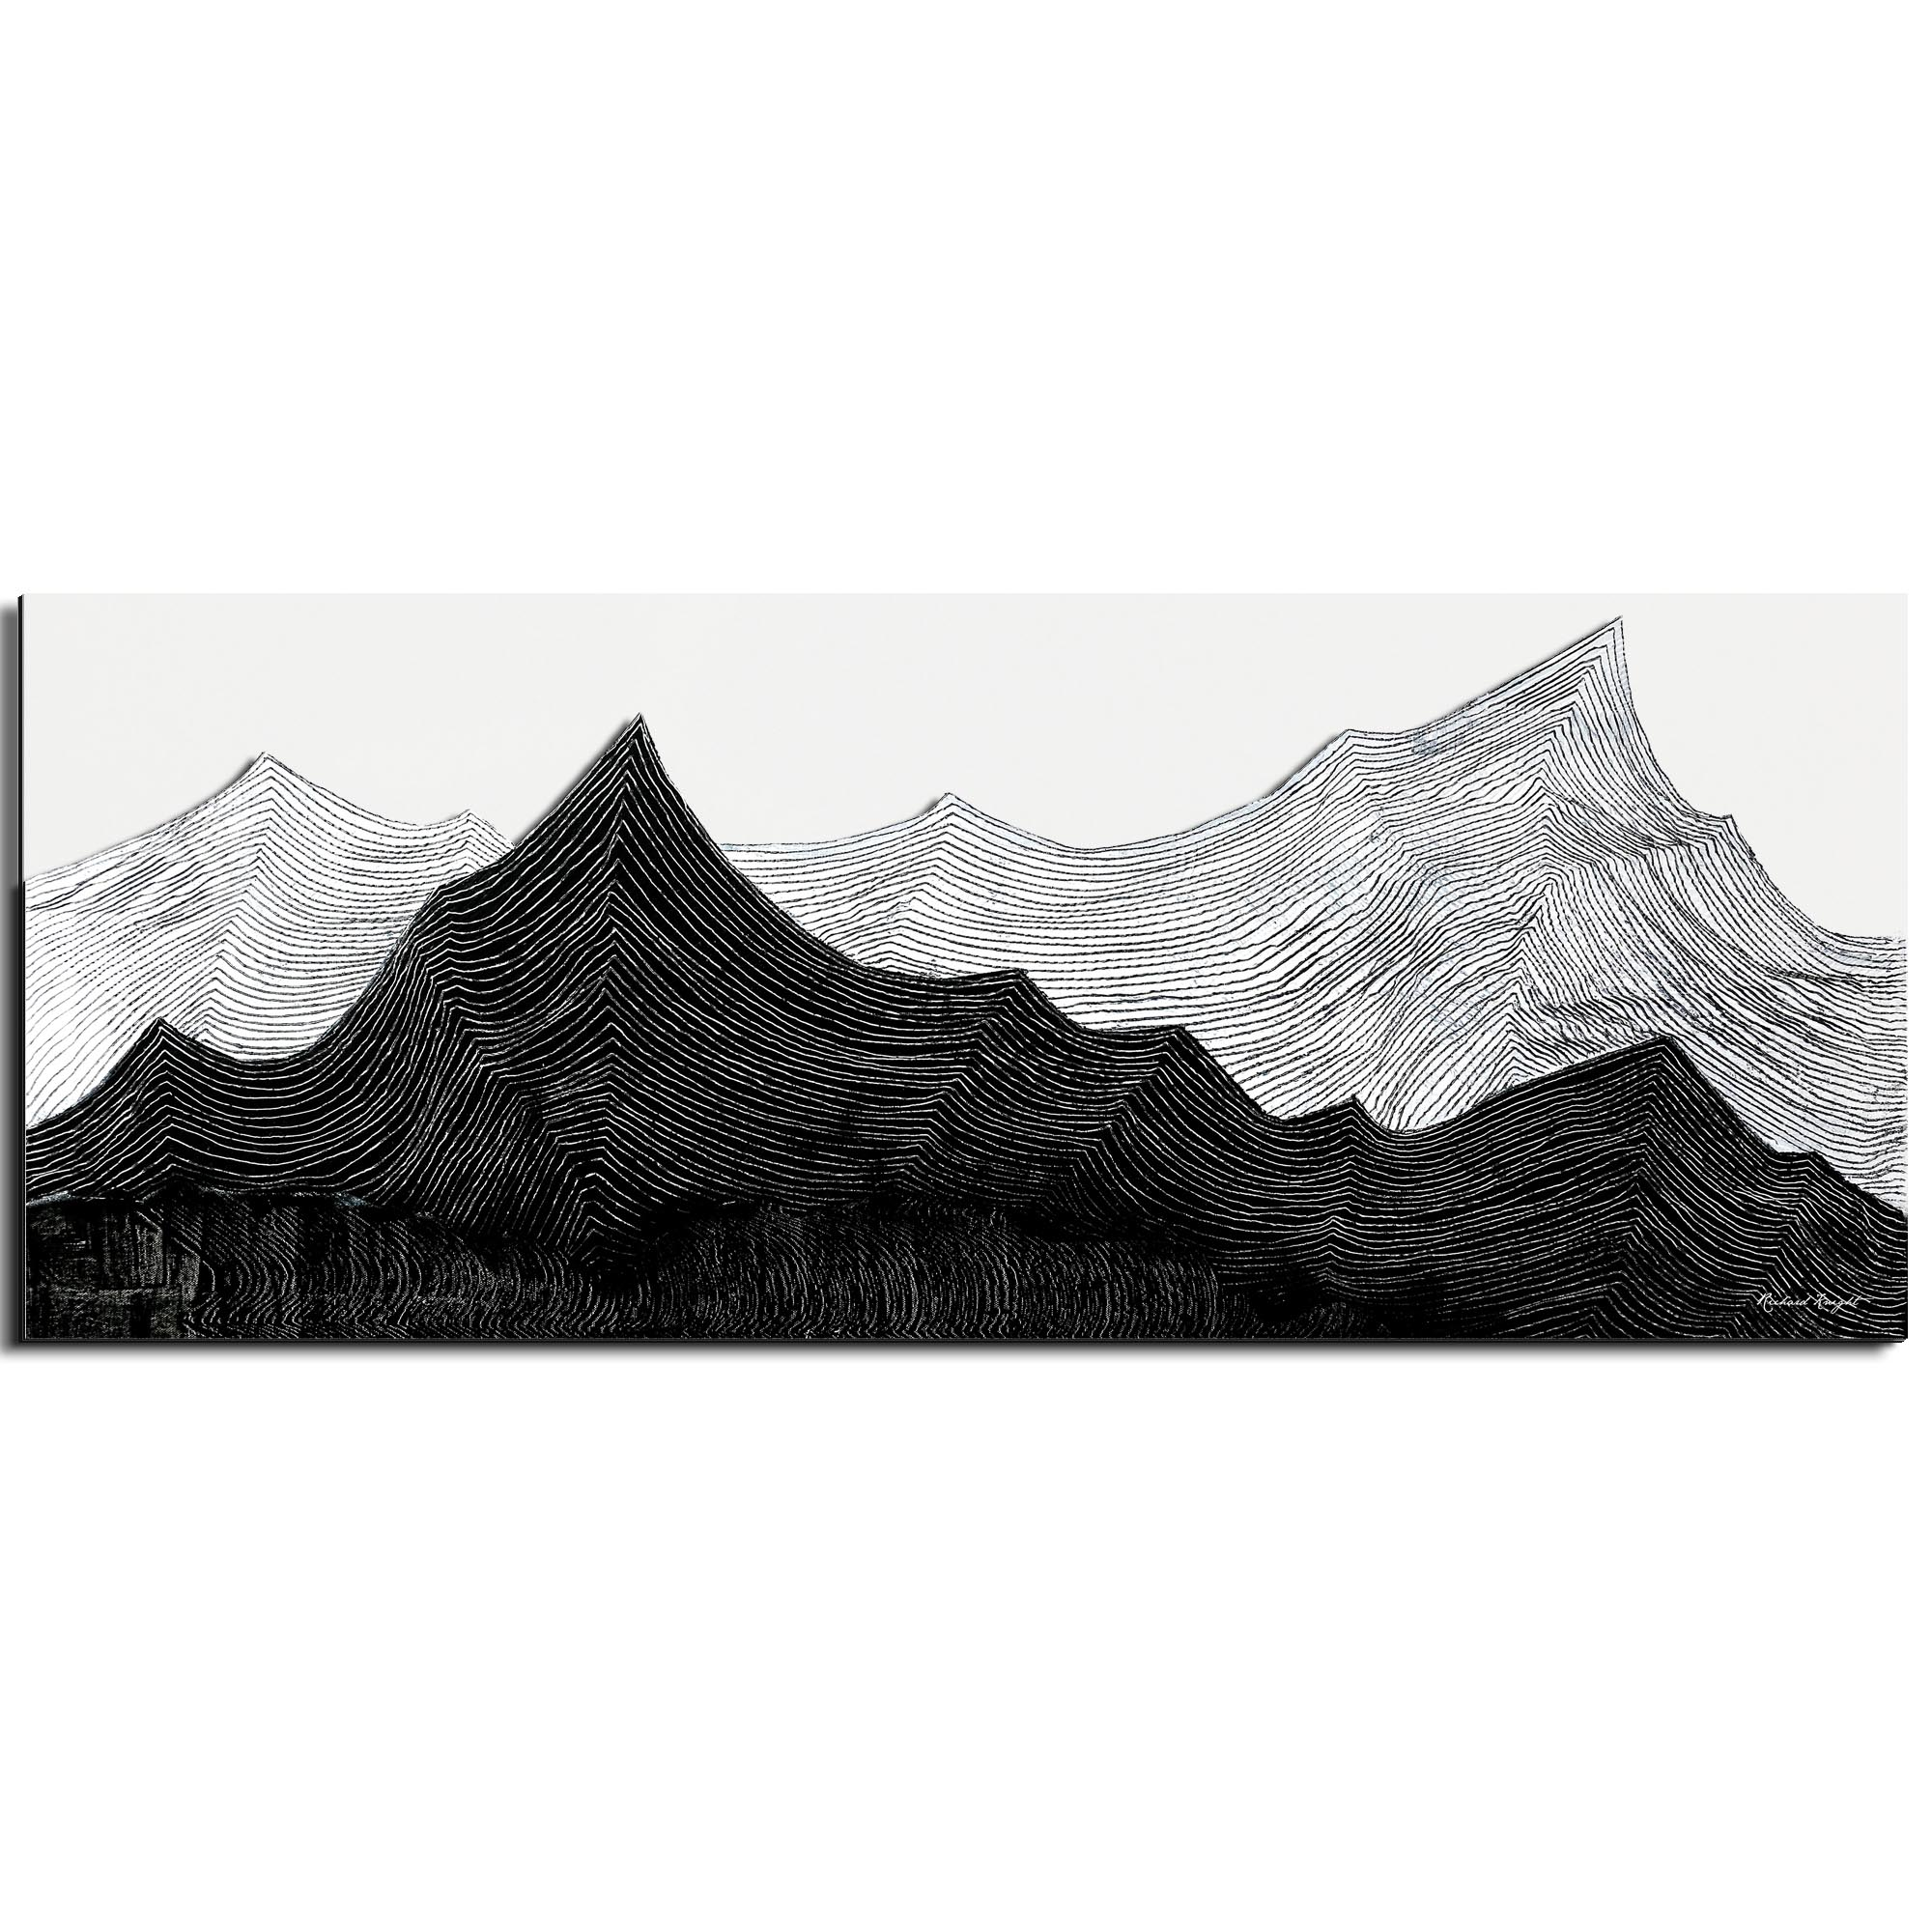 Richard Knight 'Contrasting Horizon' 48in x 19in Abstract Landscape Art on Polymetal